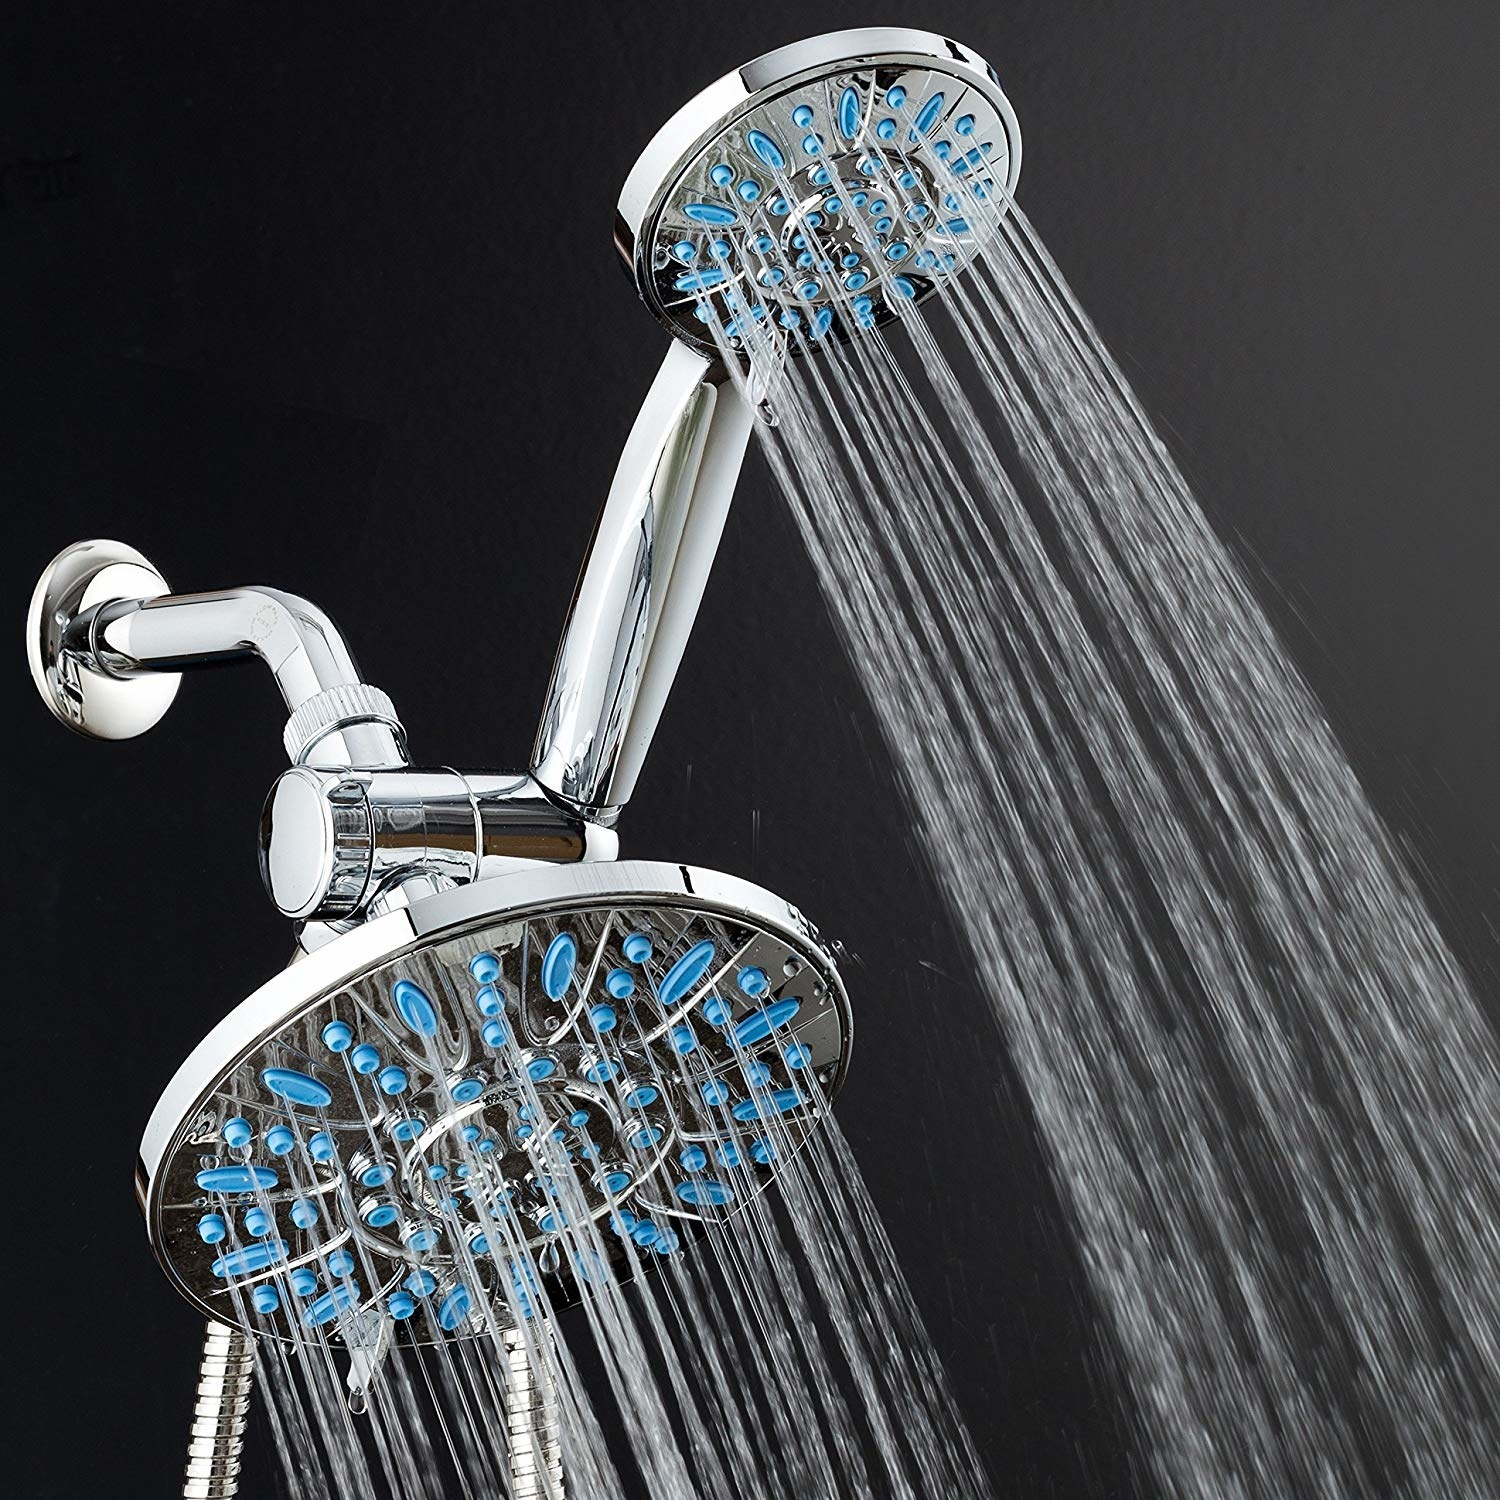 """Promising review: """"My family really loves this dual shower head. I especially love the mist setting on the large head — it filled my bathroom with with hot steam when I was very sick with the flu/pneumonia. The large head is great for relaxing muscles and washing your hair. I grab the small head to rinse body parts. The small hand-held shower head is also great for giving your dog a bath and washing down the shower walls and tub. Both heads have settings that are either high pressure or lower pressure, depending on how many holes have water jetting out of them as per setting selected. I bought this during a lightening deal, but I would buy it again at full price. This is a great product and easy to install."""" —M. Spencer Get it from Amazon for $49.99."""